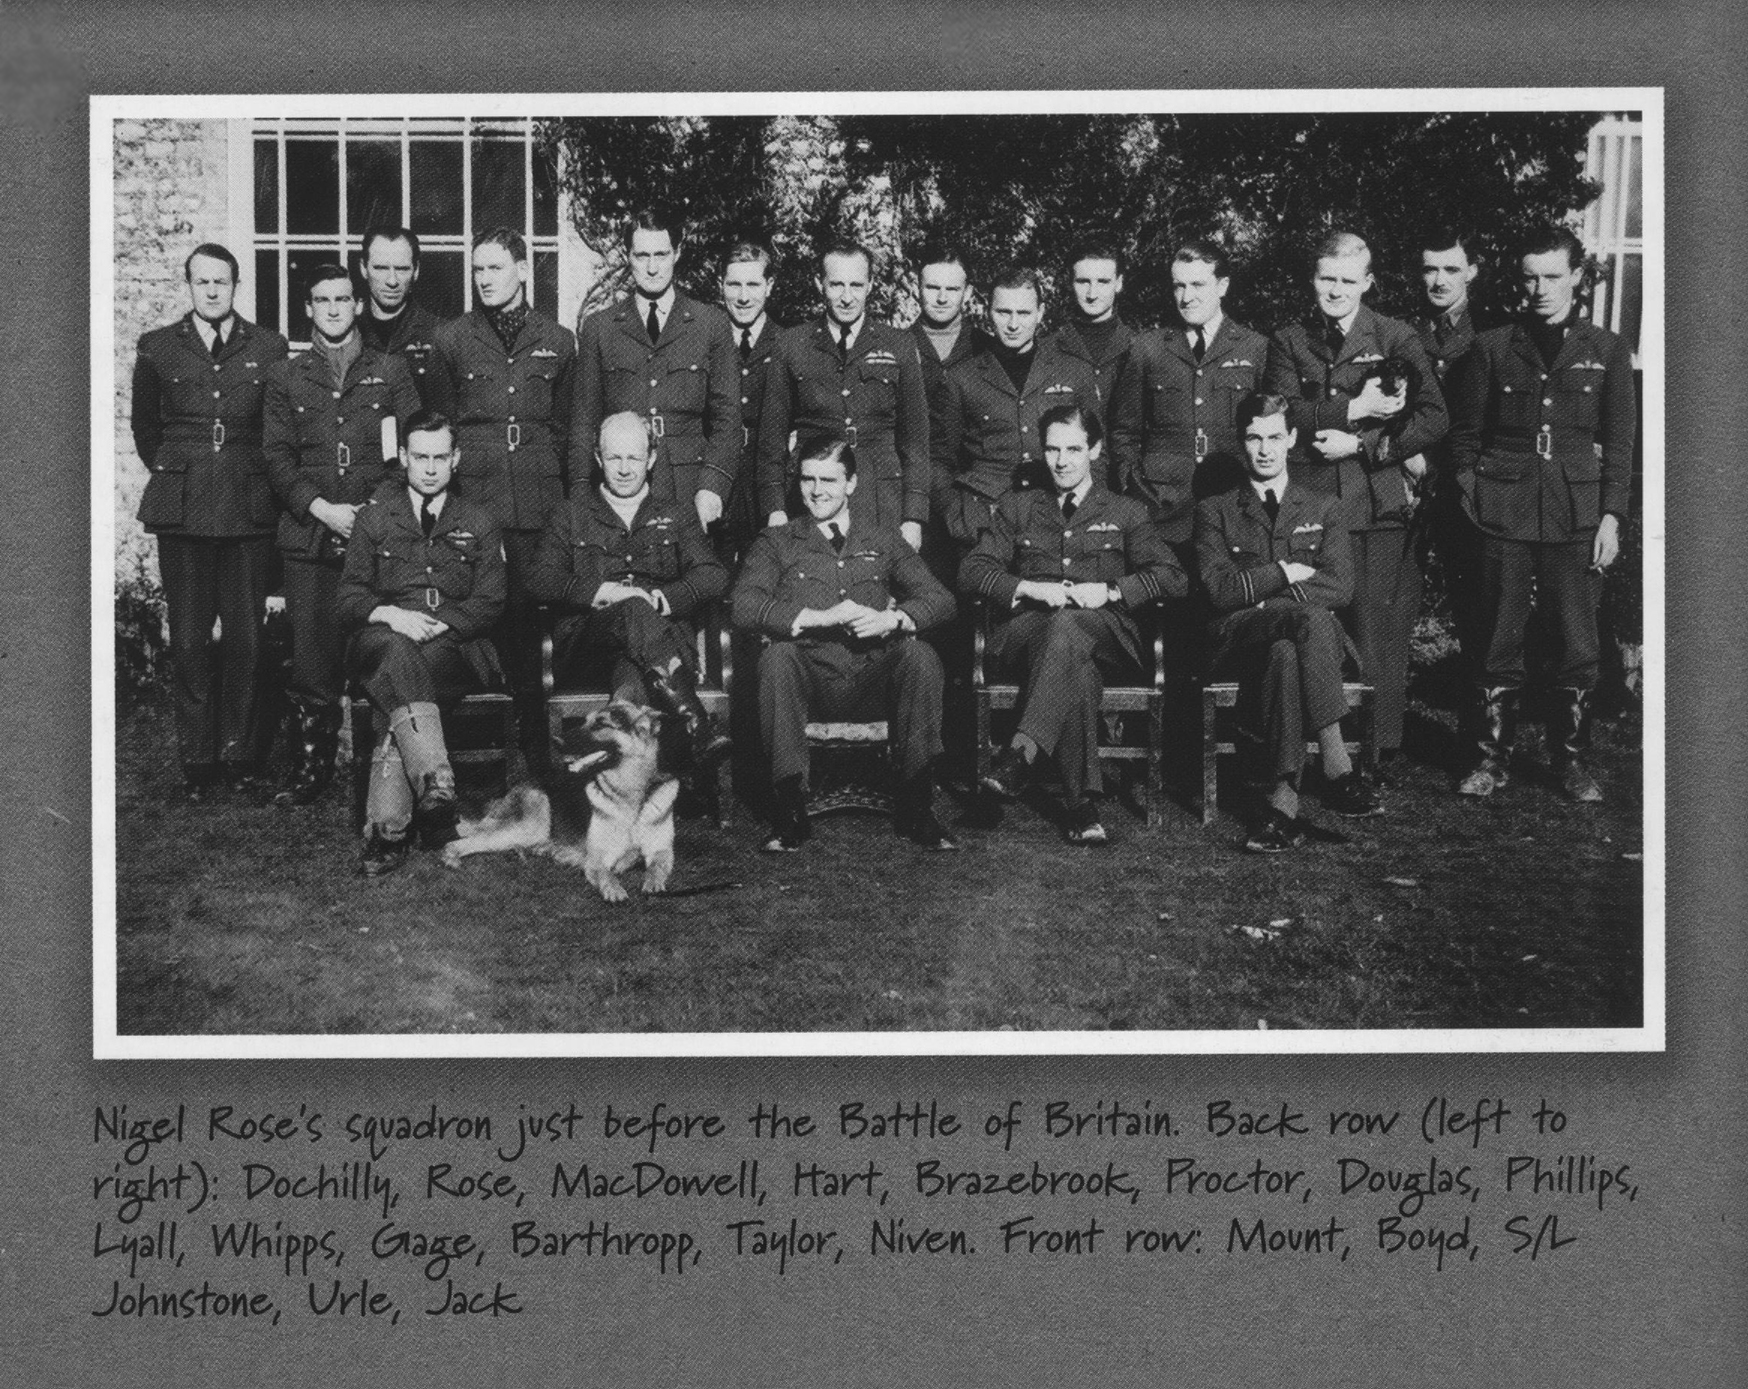 "The hand-written caption of this photo reads: ""Nigel Rose's squadron just before the Battle of Britain. Back row (left to right): Dochilly, Rose, MacDowell, Hart, Brazebrook, Proctor, Douglas, Phillips, Lyall, Whipps, Gage, Barthropp, Taylor, Niven. Front row: Mount, Bayd, Squadron Leader Johnstone, Urle, Jack"". PHOTO: Courtesy of John Hart"